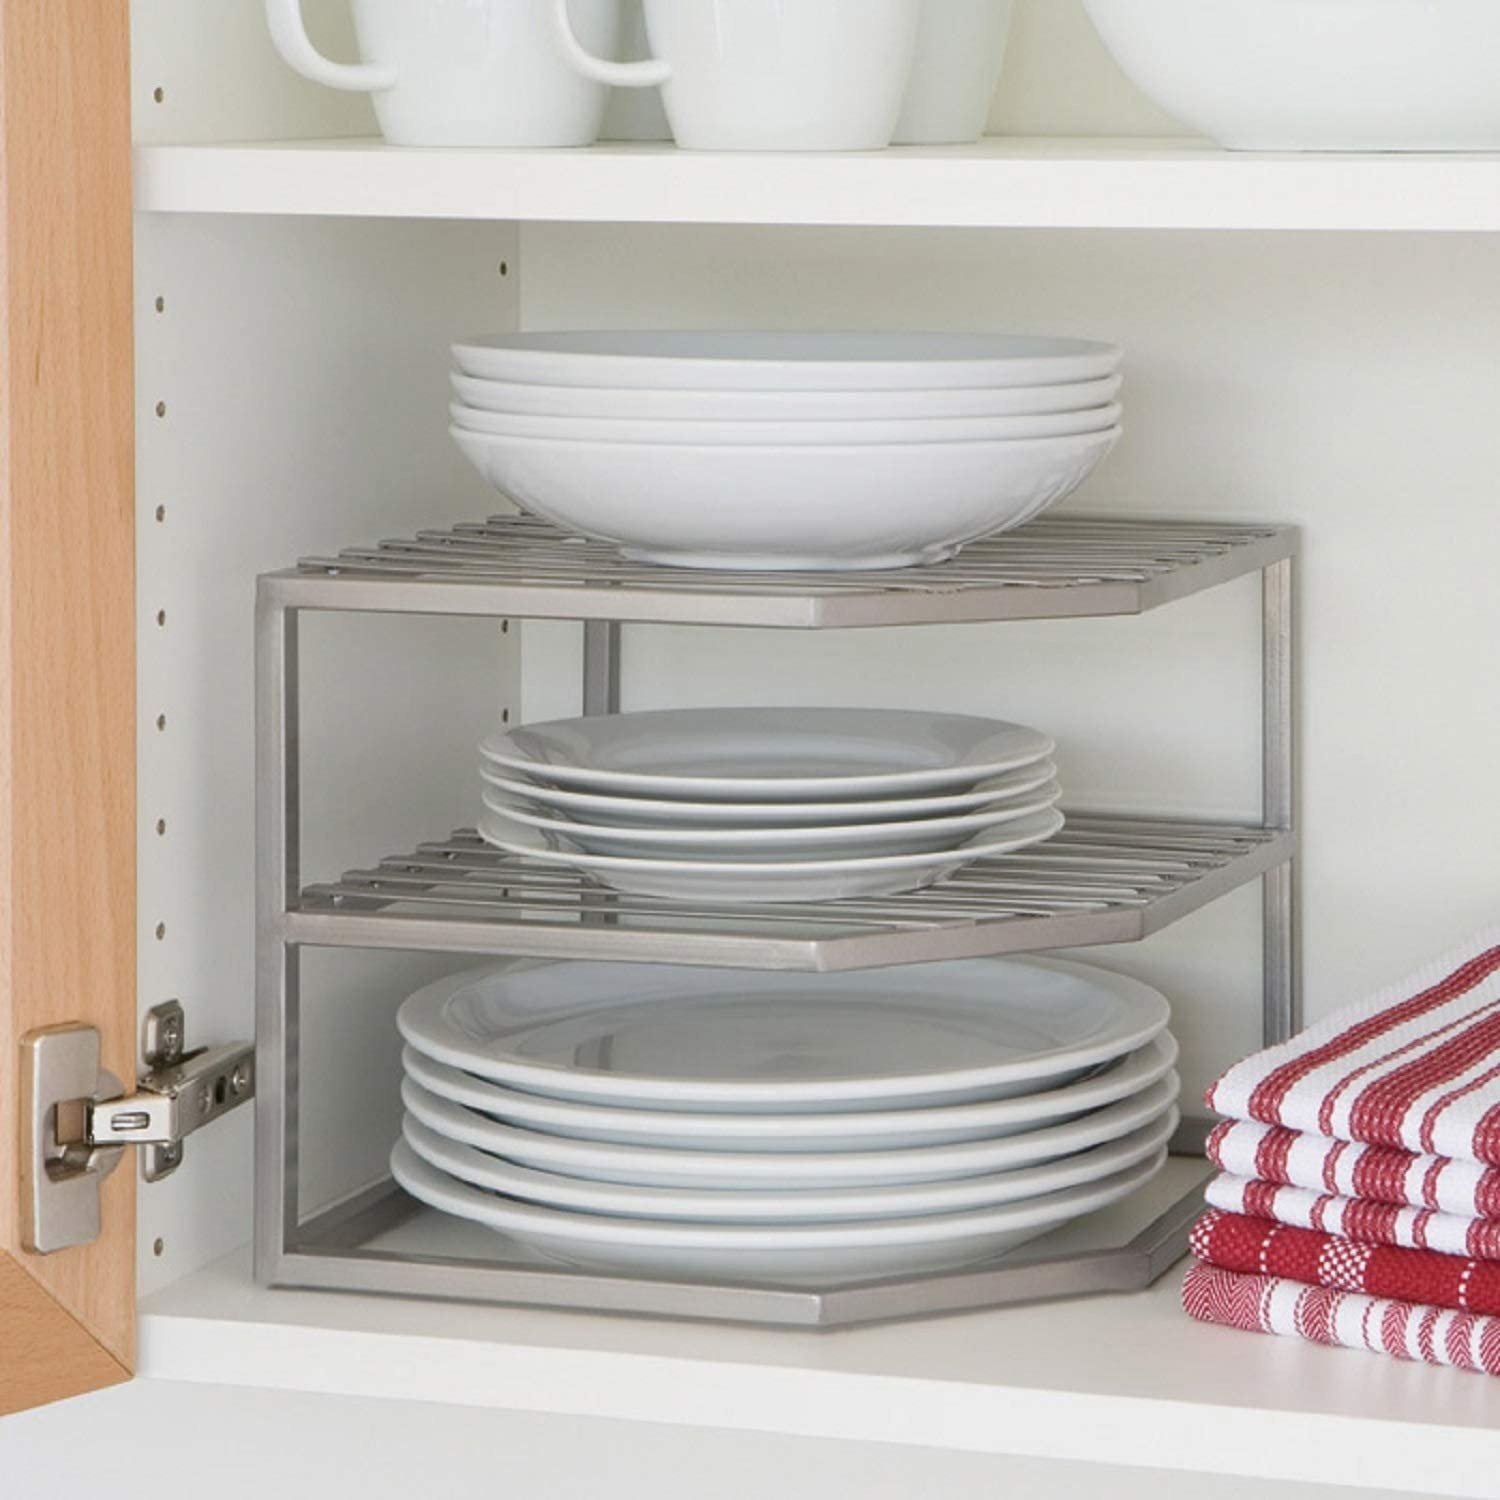 A platinum corner dish and bowl organizer with wire-framed shelves